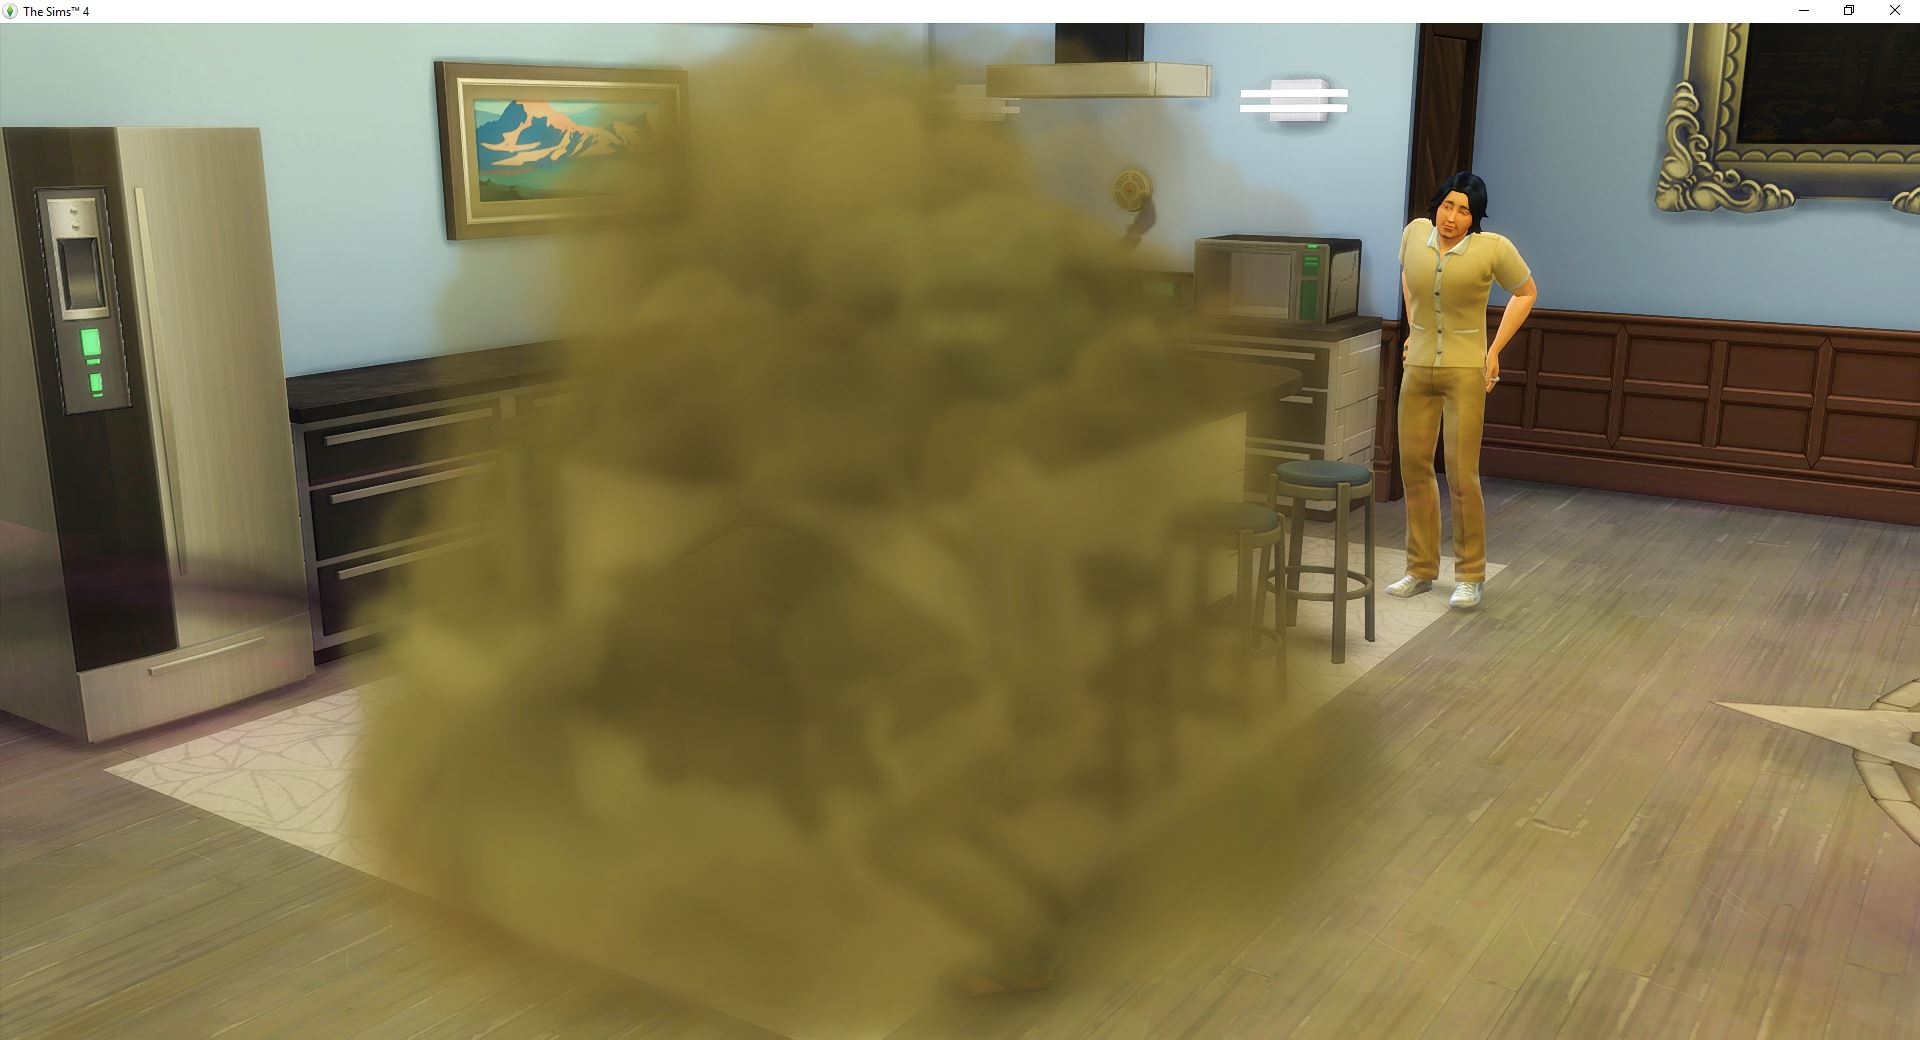 2019-03-16 06_51_21-The Sims™ 4